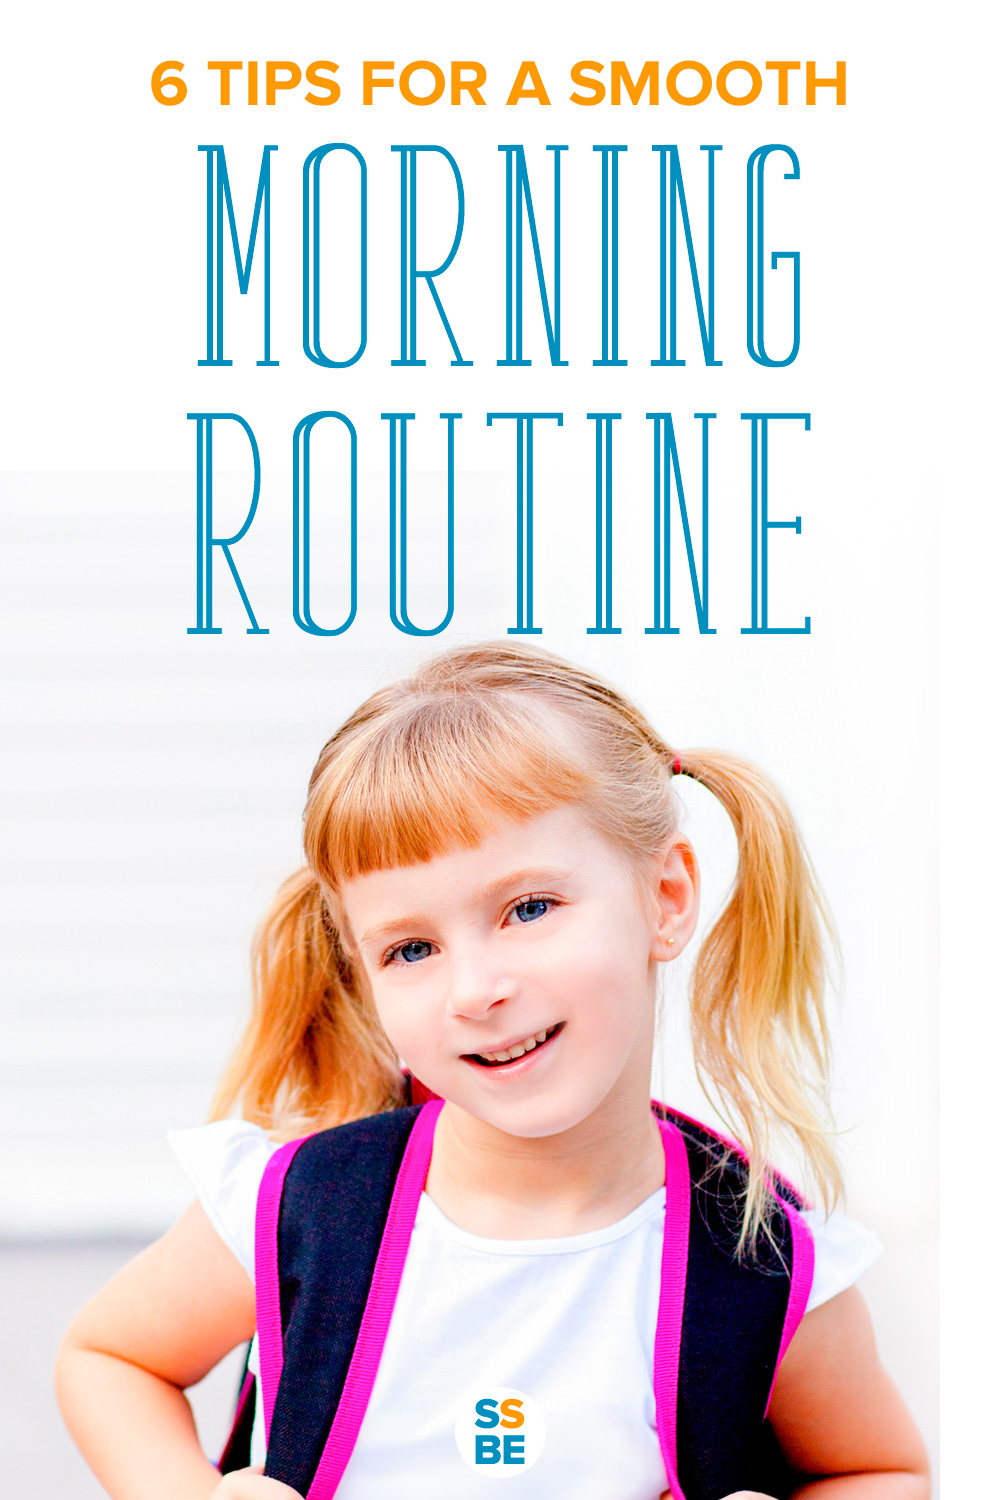 Getting out the house to go to school can be a challenge for many parents. Read these 6 tips to make your morning routine for school run smoothly.